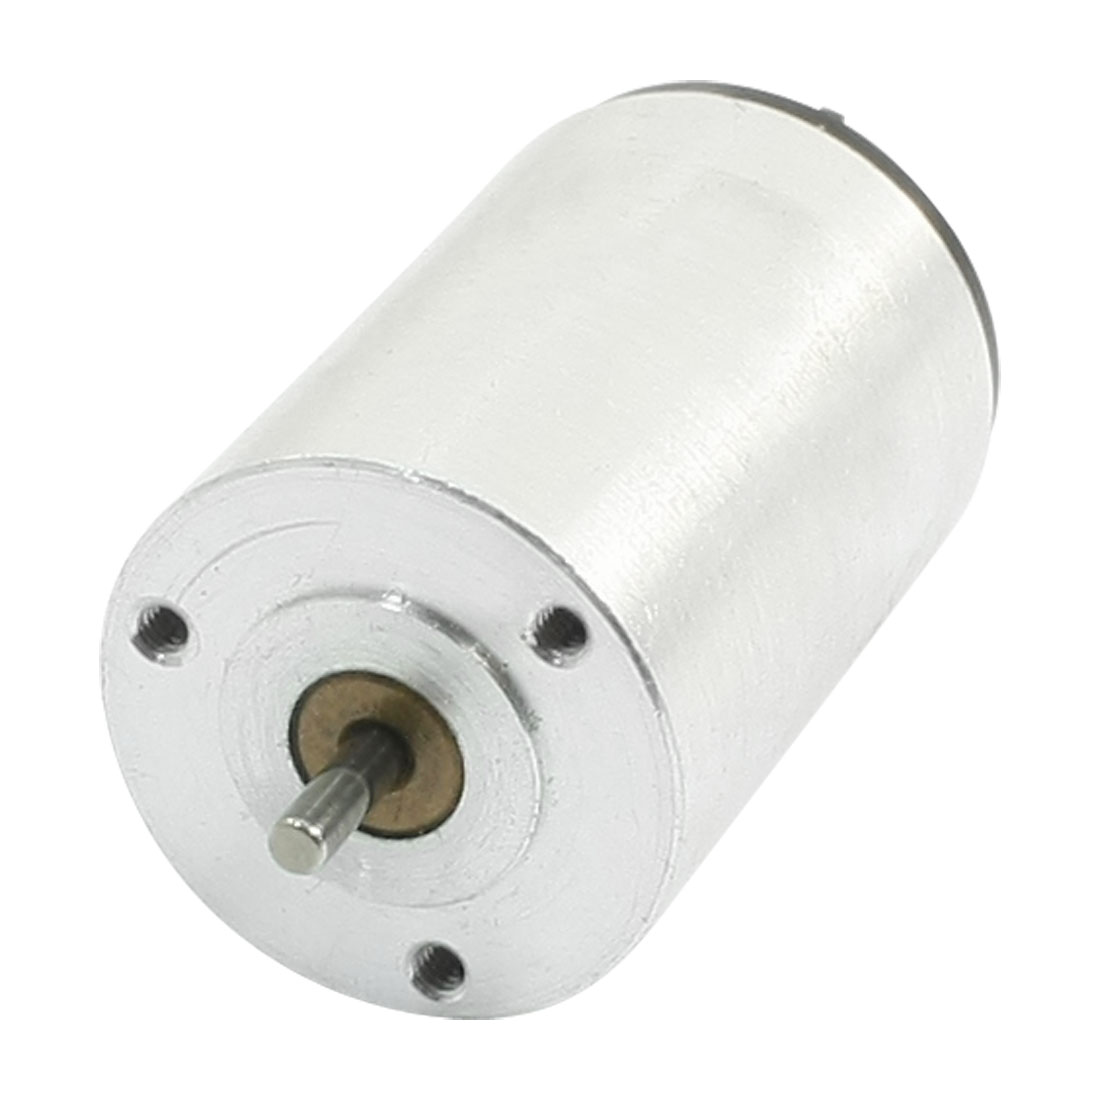 24V-Volt-10000RPM-Output-Speed-Mini-DC-Motor-for-Robot-Toys